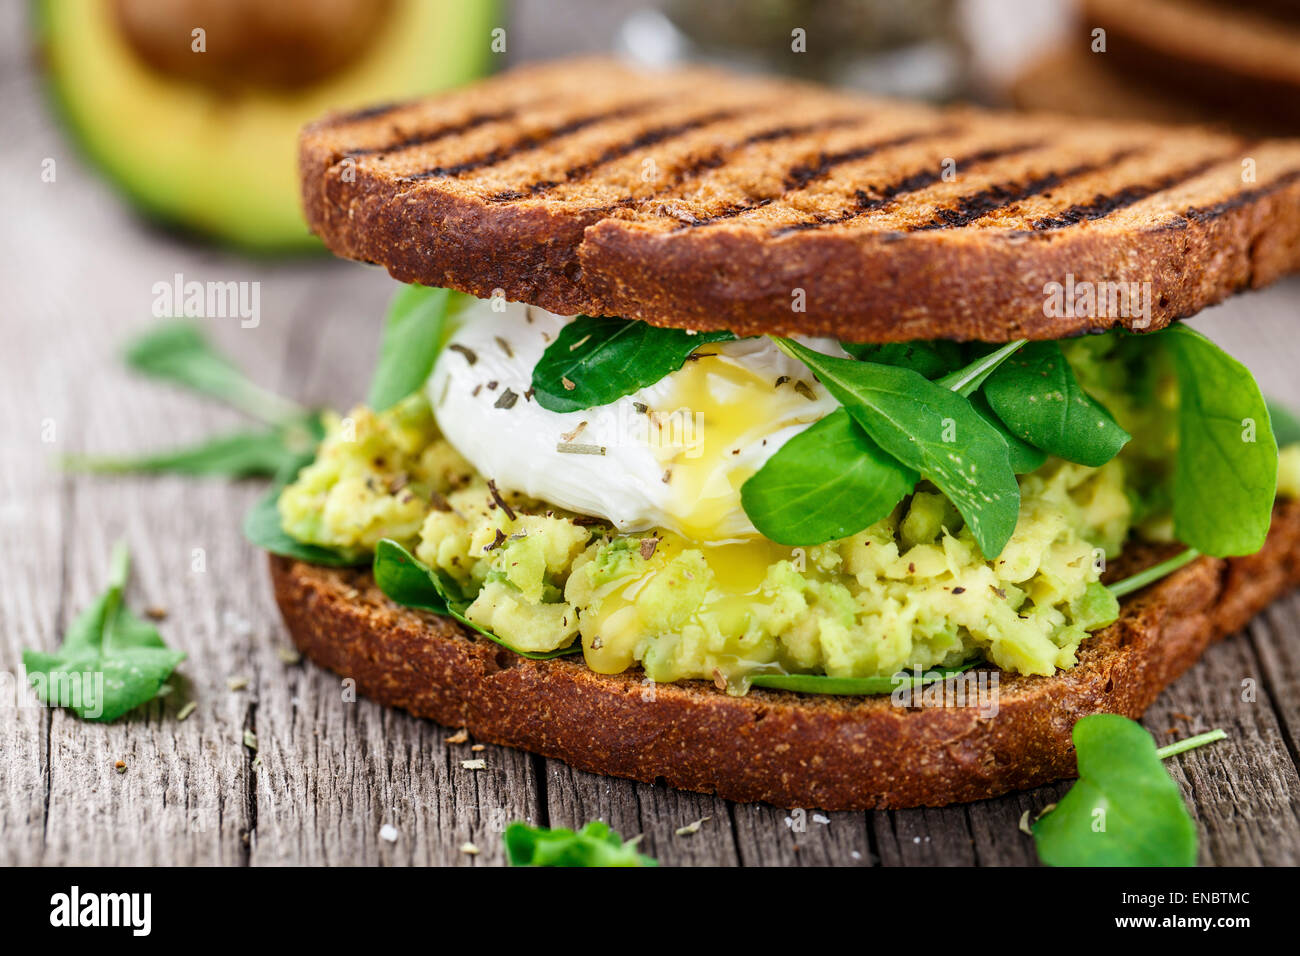 Grilled sandwich with avocado, poached egg and arugula on wooden table - Stock Image